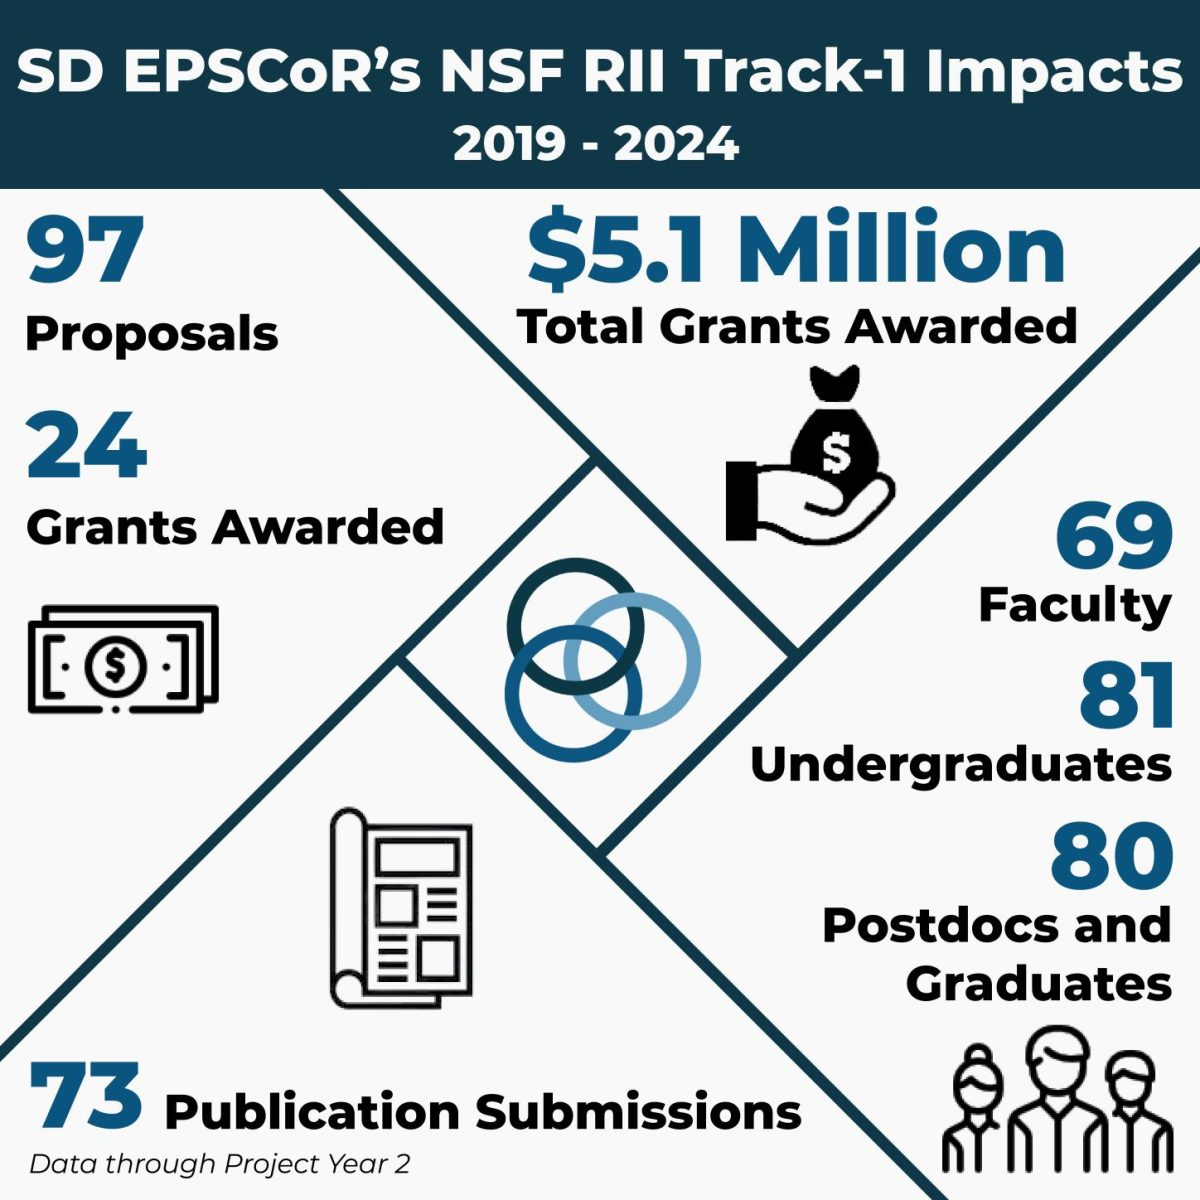 Year-2 Results for 2D Best: 97 proposals, 24 grants awarded, 73 publication submissions, $5.1 million total grants awarded, 69 faculty, 81 undergraduates, 80 postdocs and graduates.